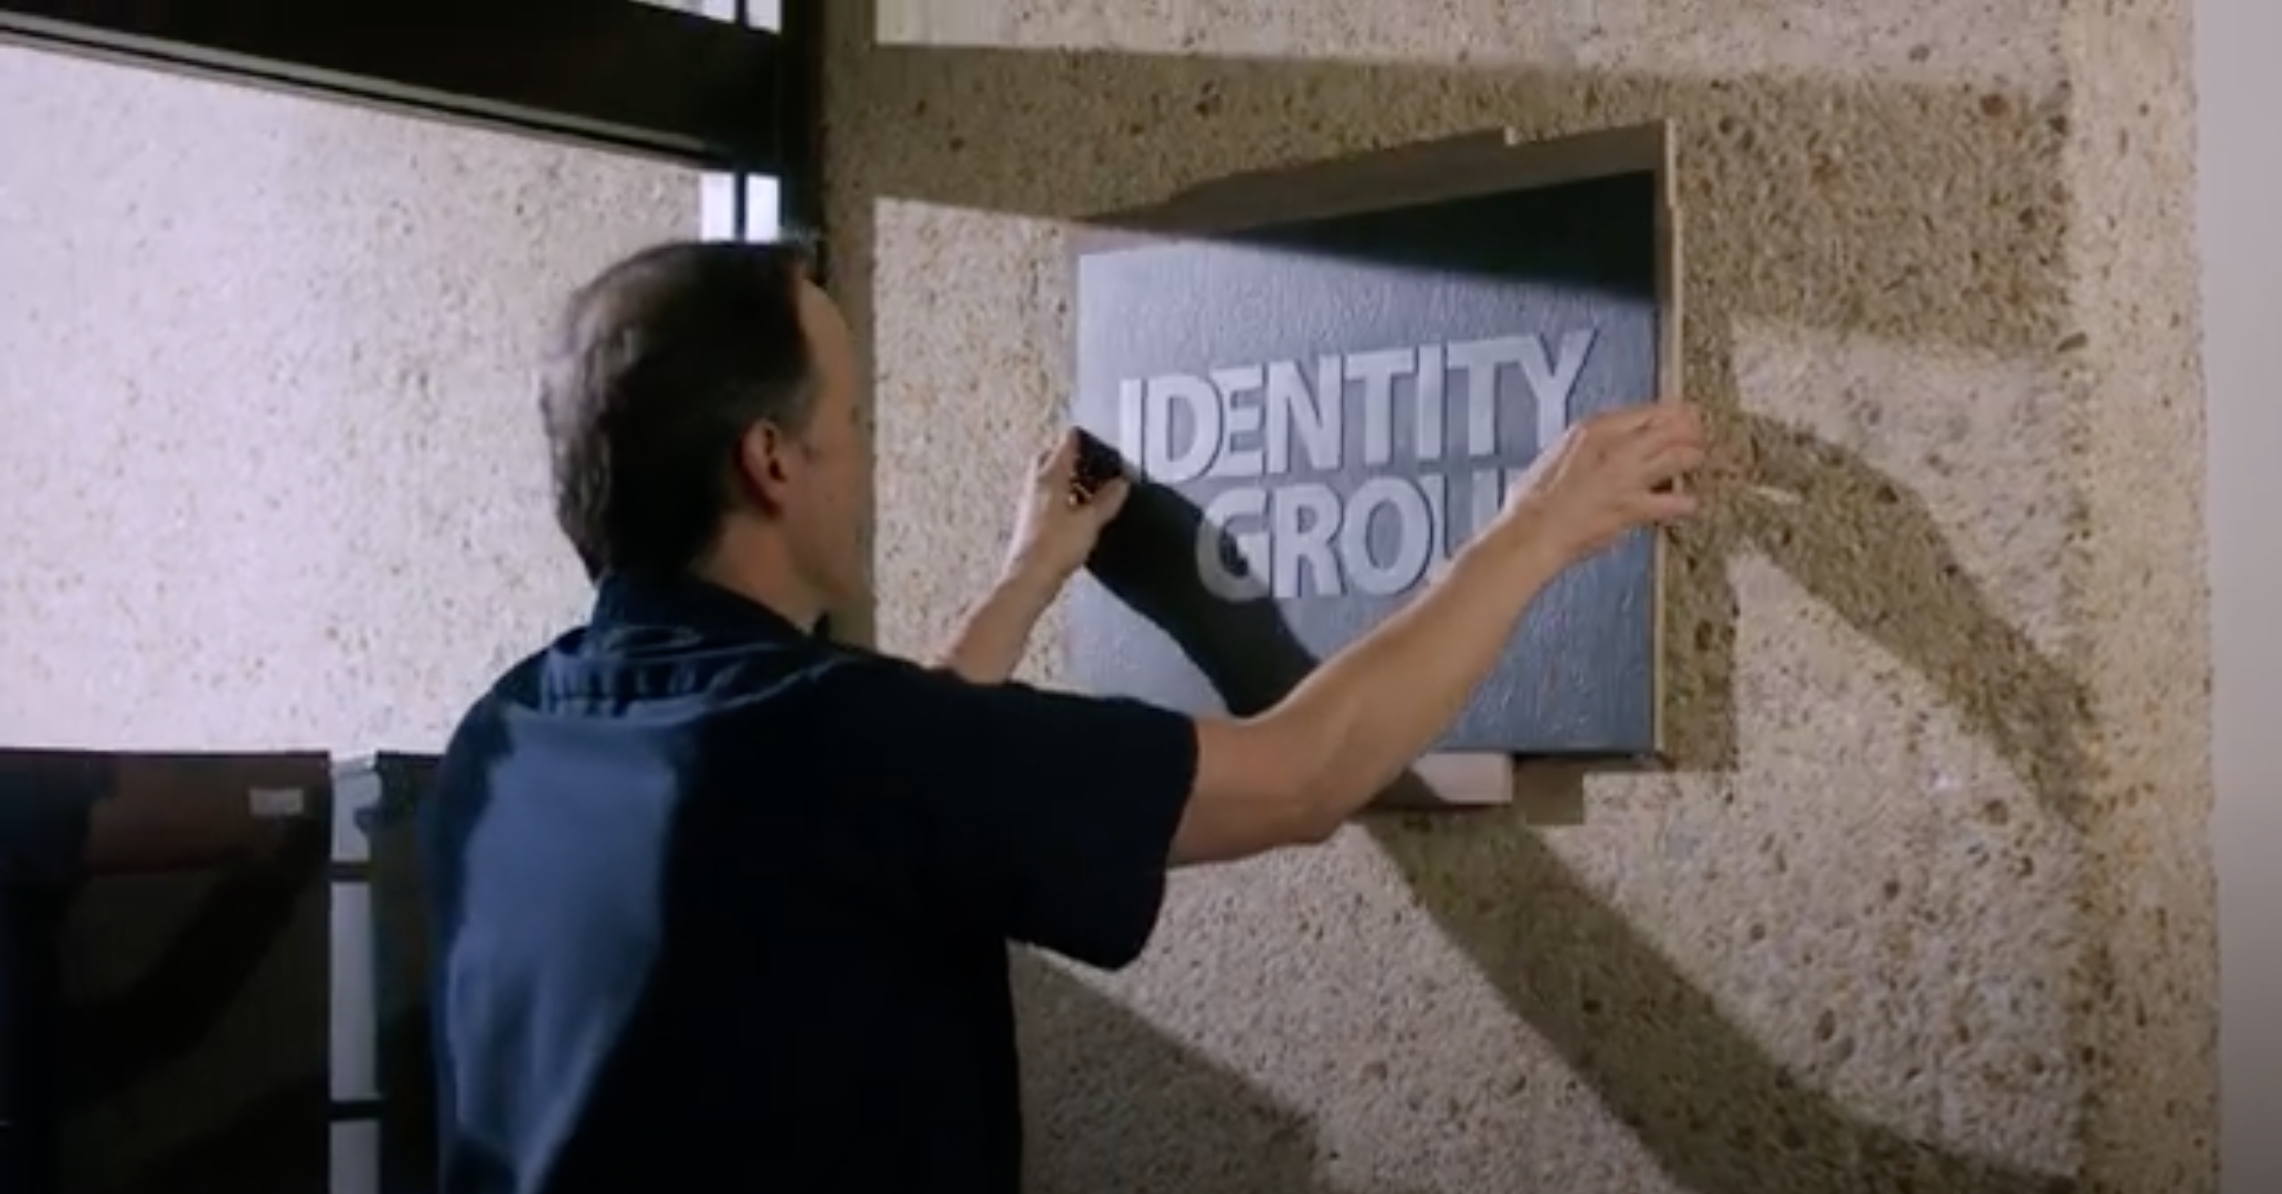 Man hanging Identity Group Sign on concrete wall